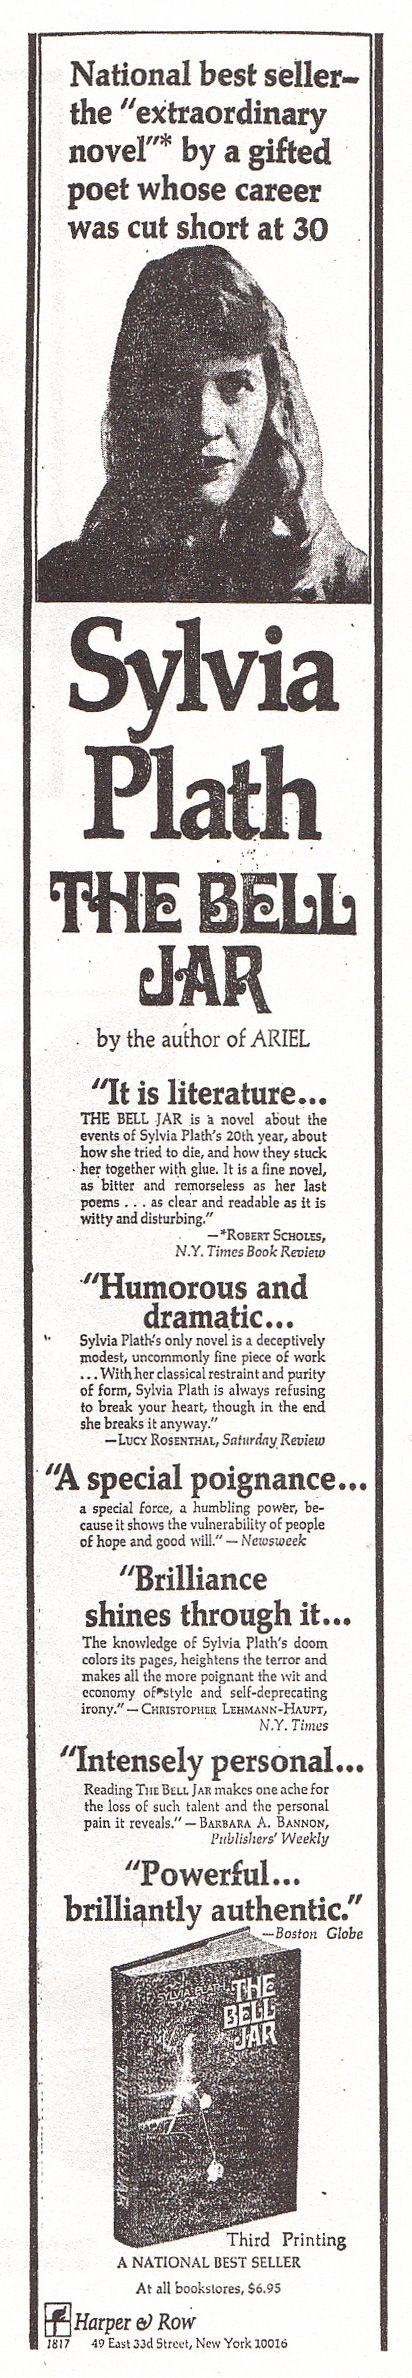 Sylvia Plath's fictionalized account of psychotherapy and hospitalization at the Very Best Places in the postwar US [from The First Ads for Famous Books]